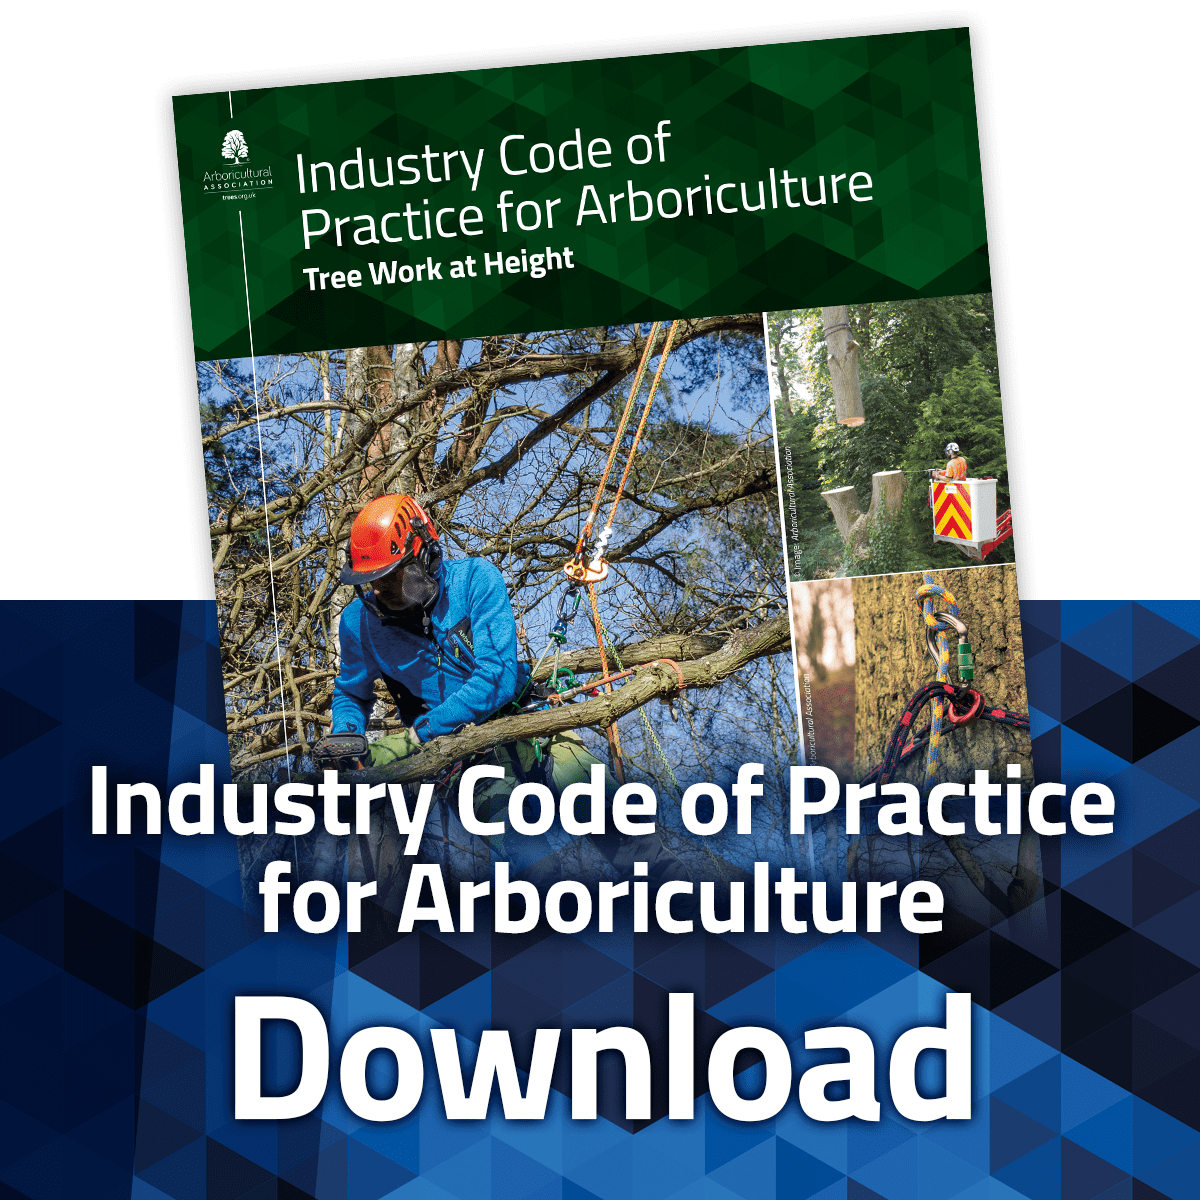 Download the Industry Code of Practice: Tree Work at Height